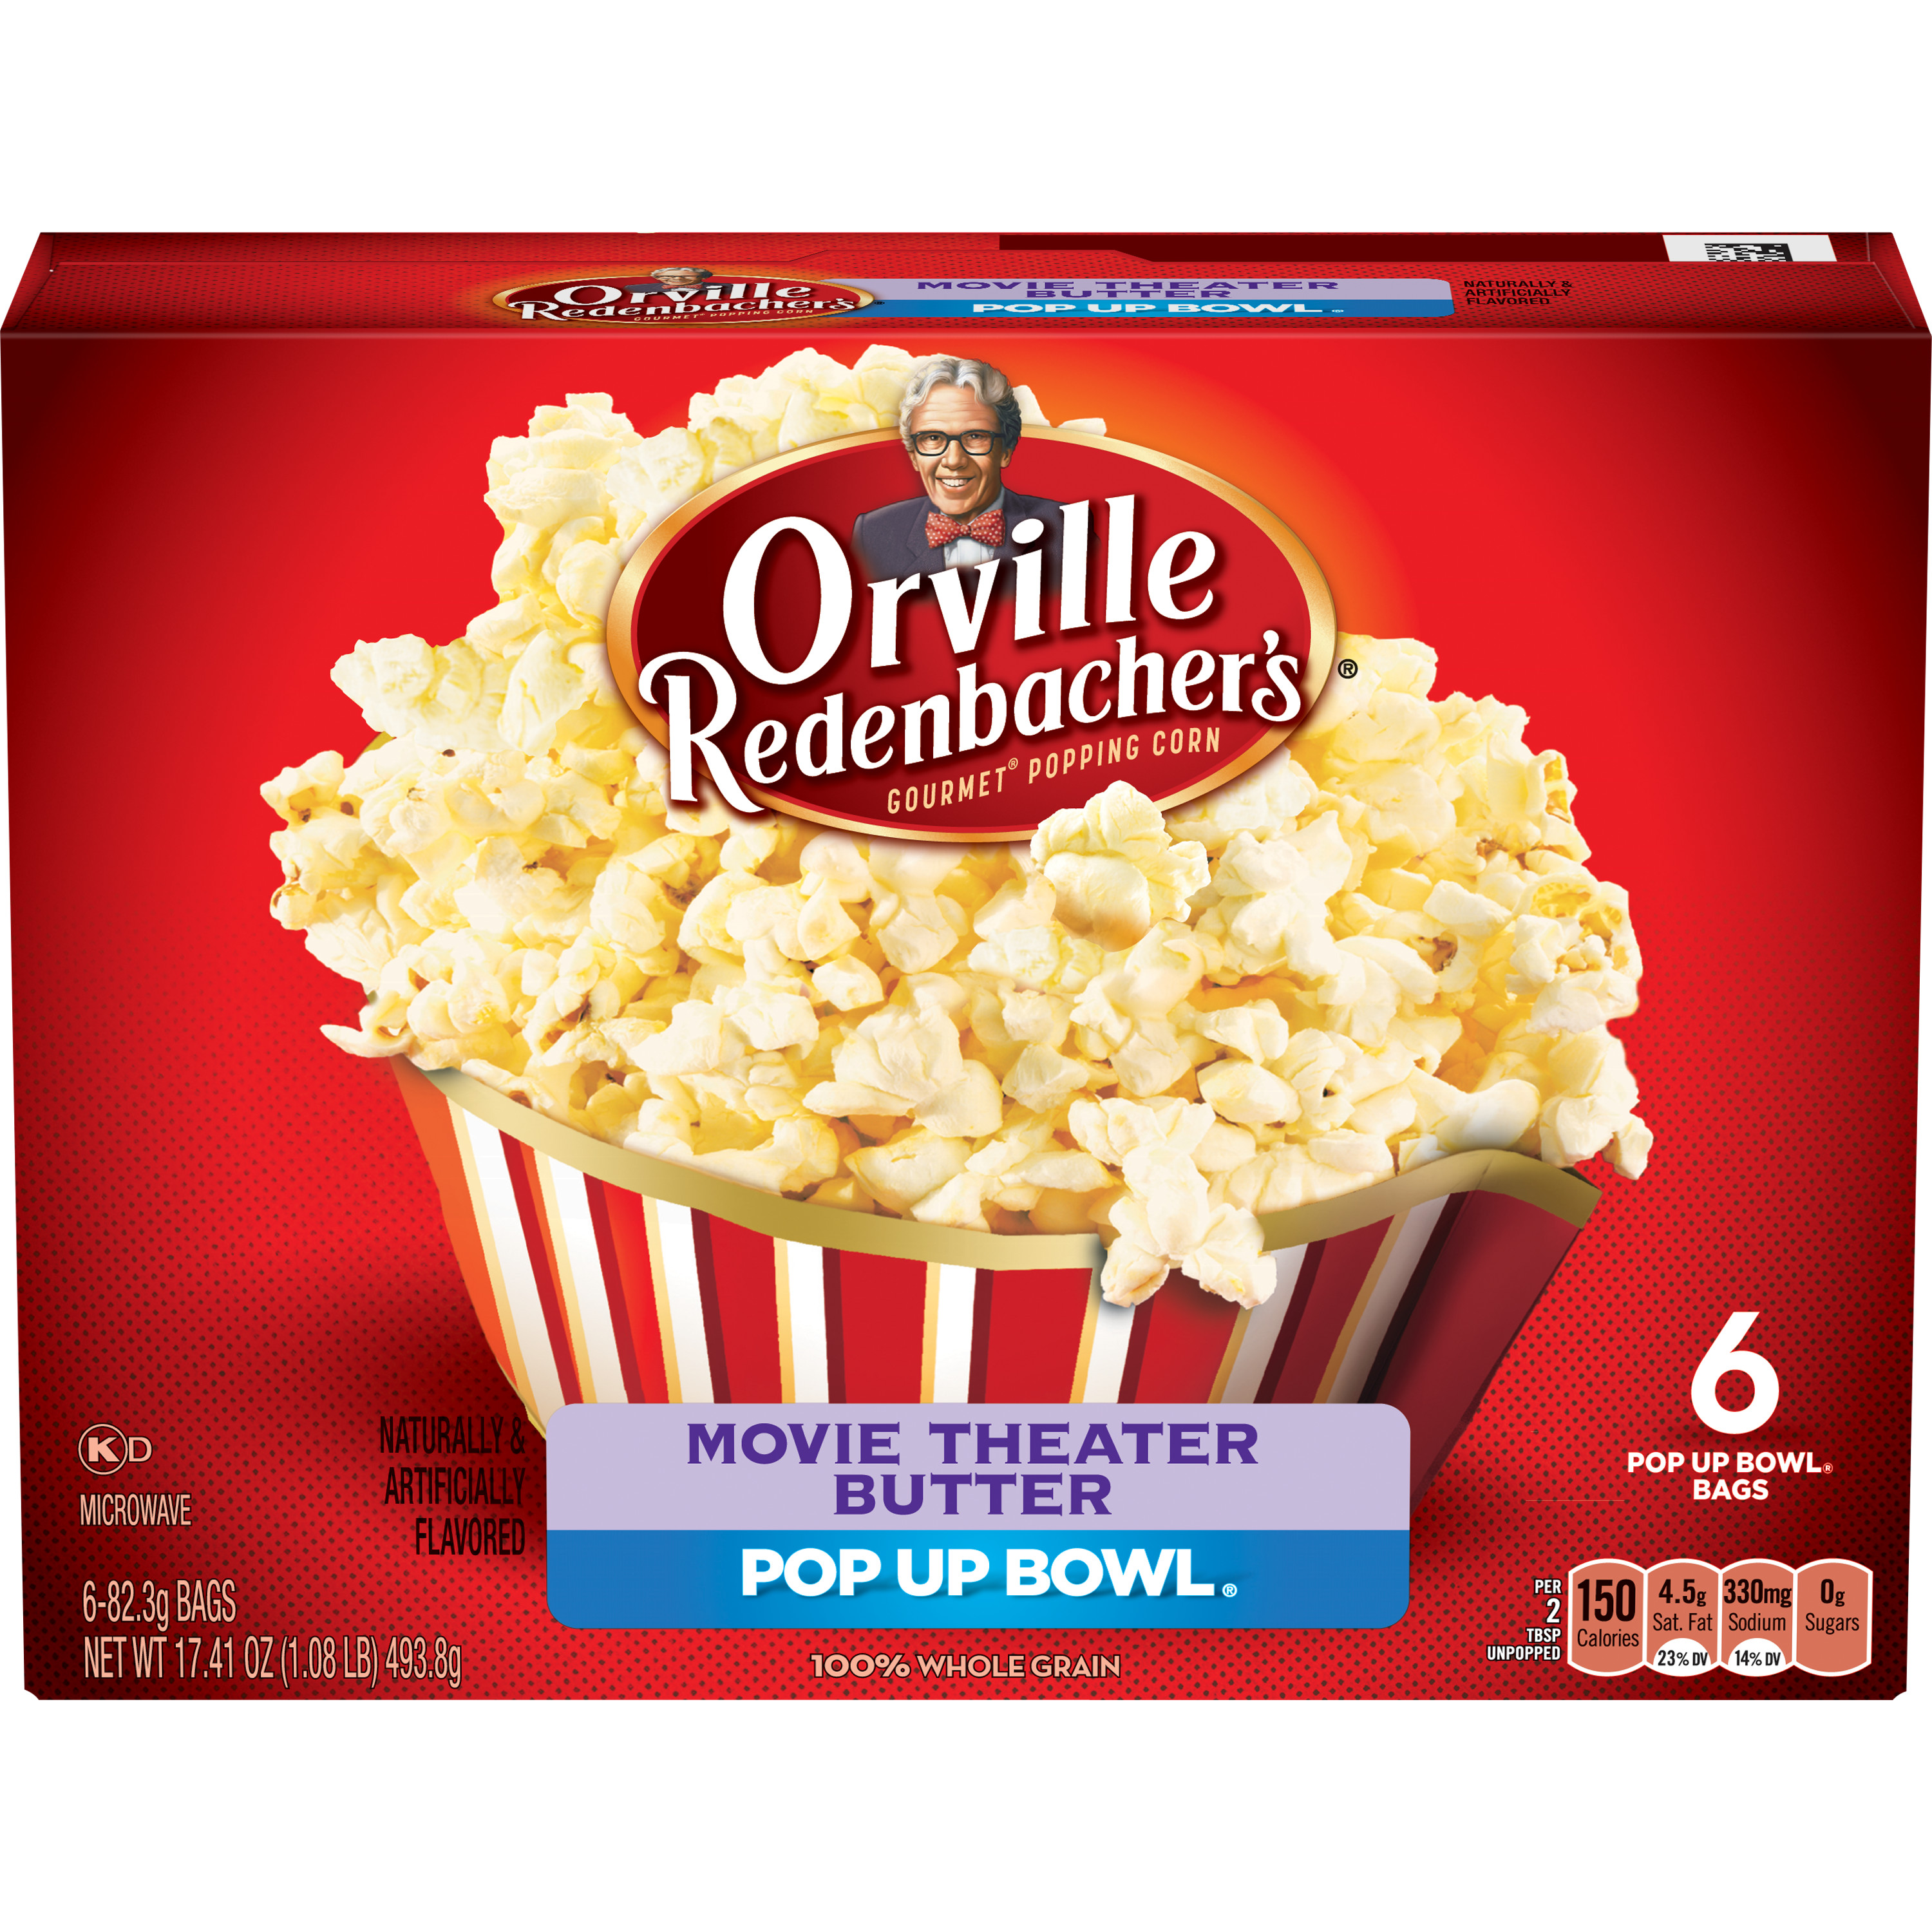 Orville Redenbacher's Movie Theater Butter Microwave Popcorn, 6 ct